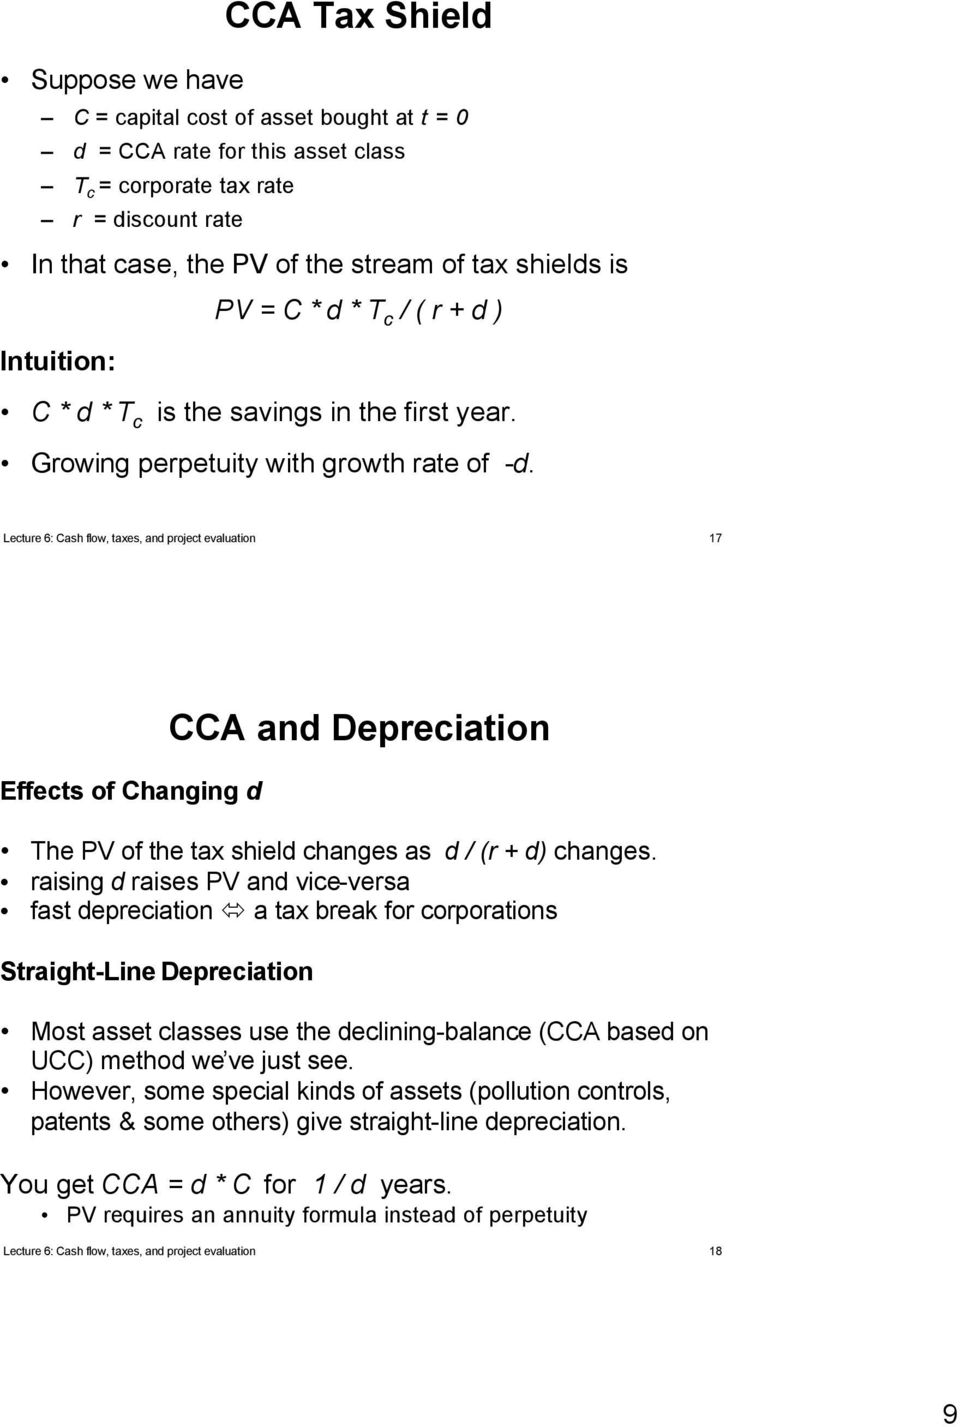 Lecture 6: Cash flow, taxes, and project evaluation 17 Effects of Changing d CCA and Depreciation The PV of the tax shield changes as d / (r + d) changes.